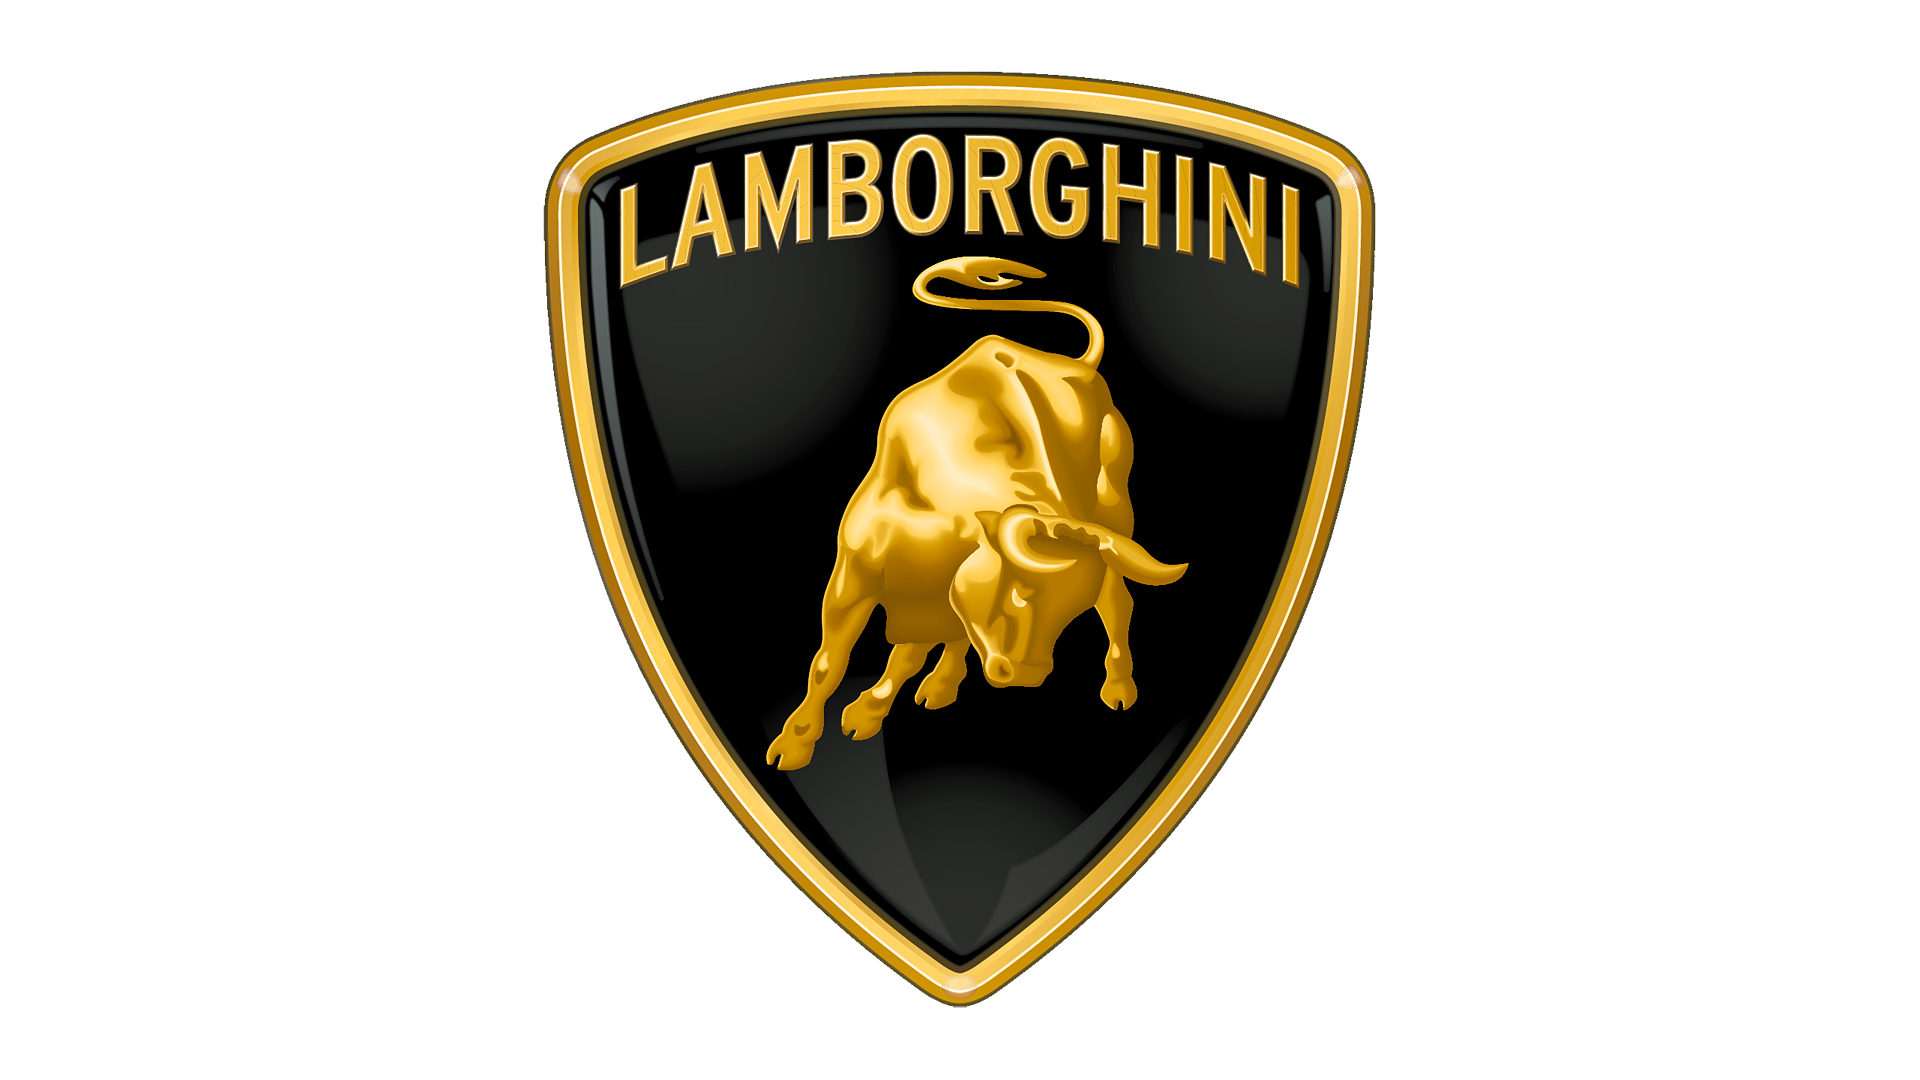 Lamborghini logo photo